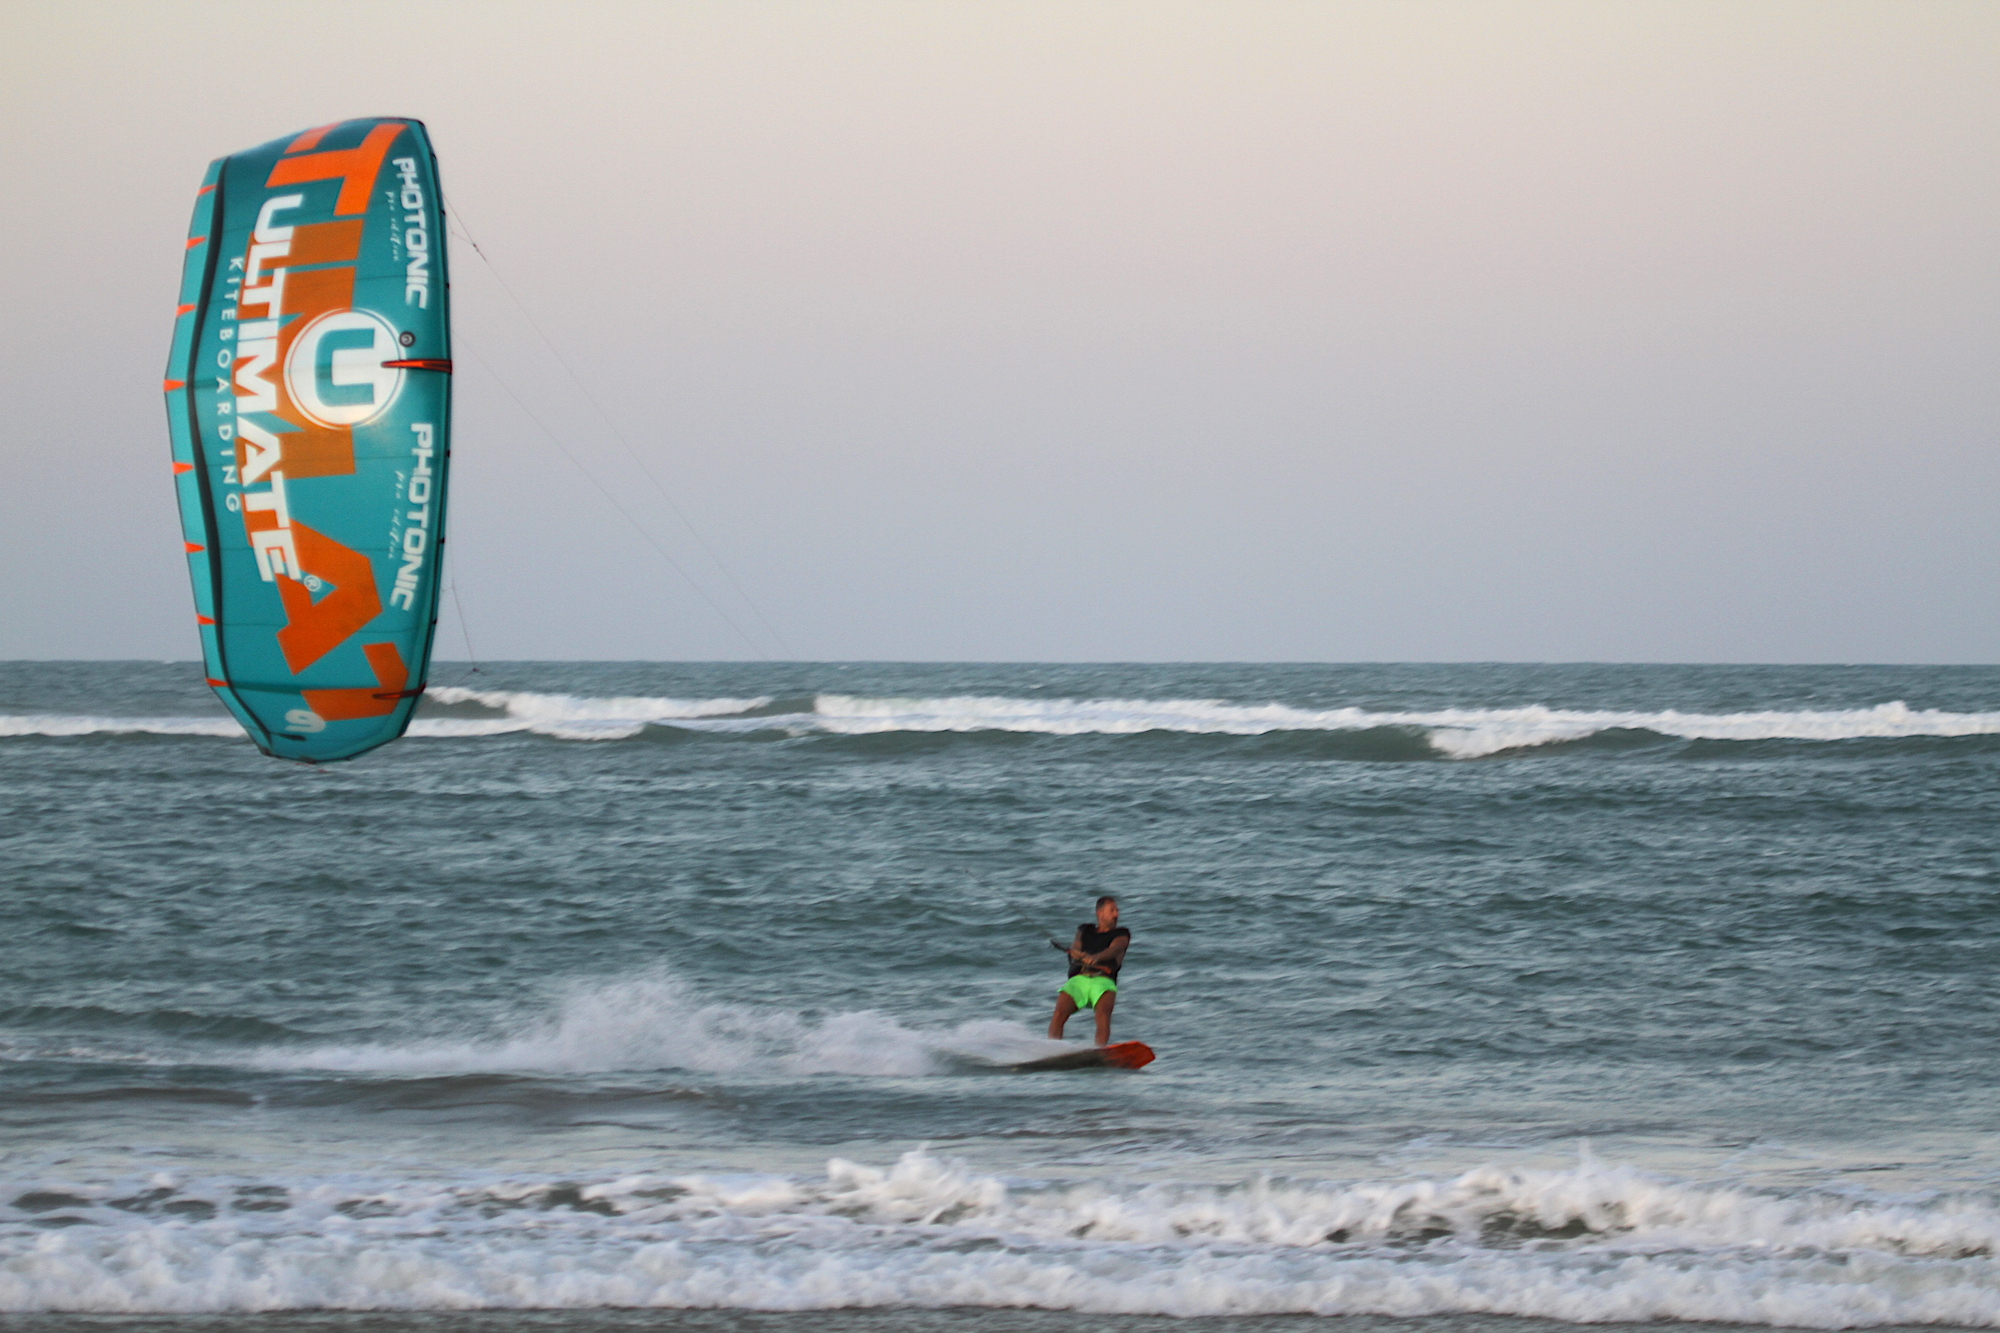 https://www.ultimate-kiteboarding.com/wp-content/uploads/2019/01/Photonic-V3-02.jpg